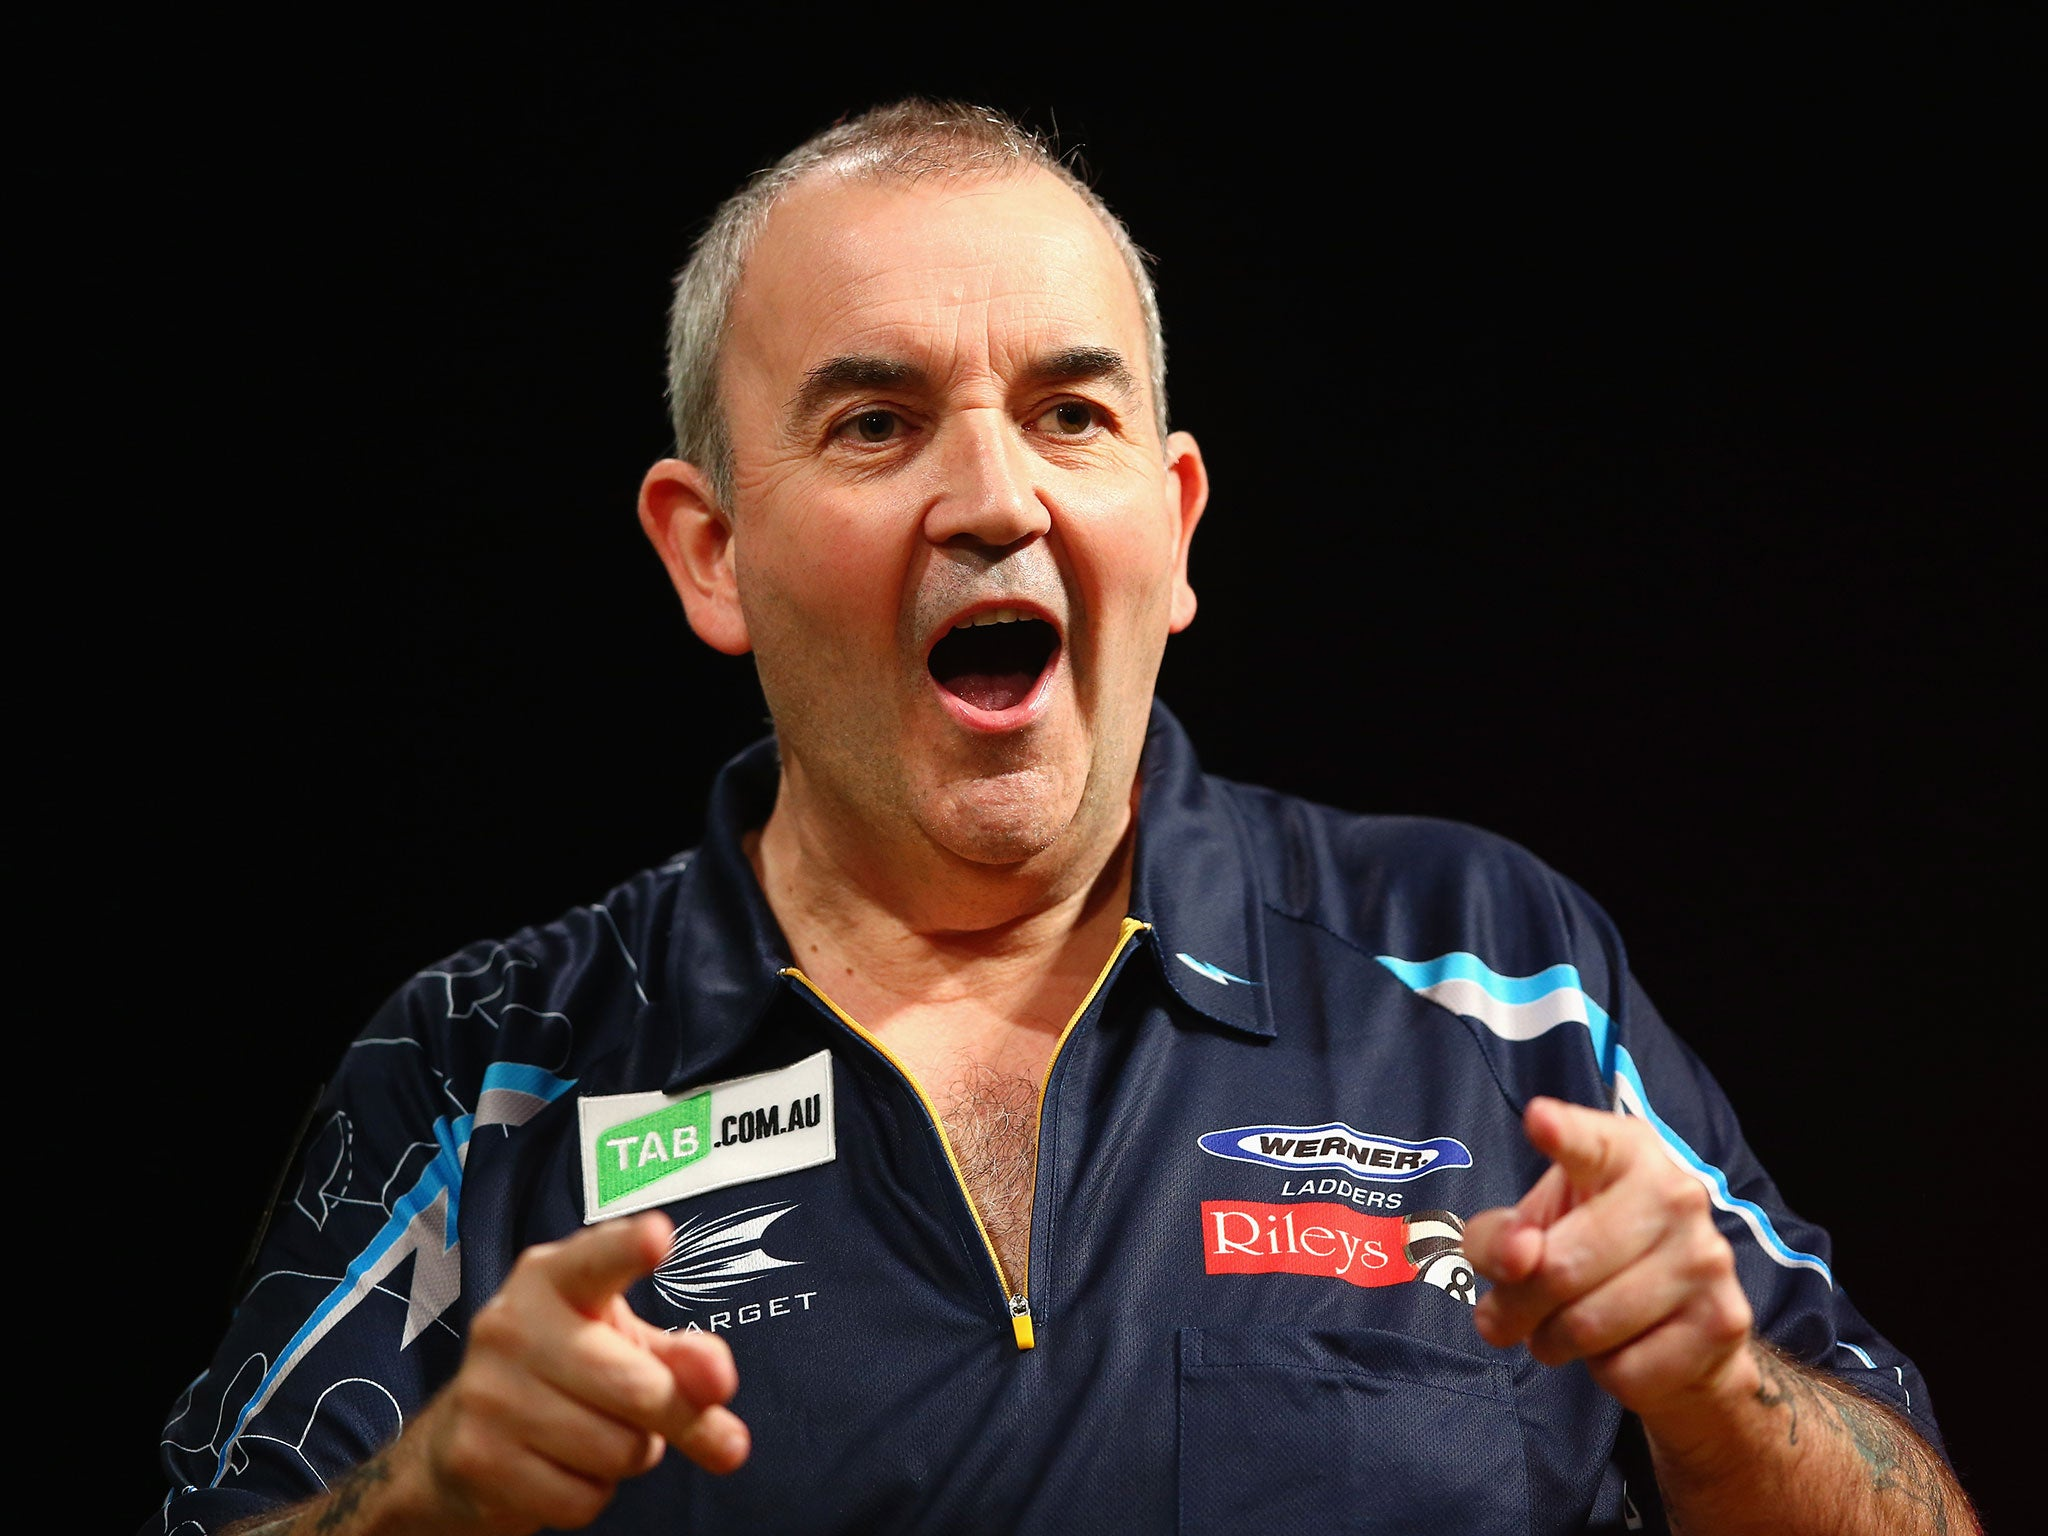 World Darts Championship 2014 Friday 19 December schedule: Phil Taylor ...